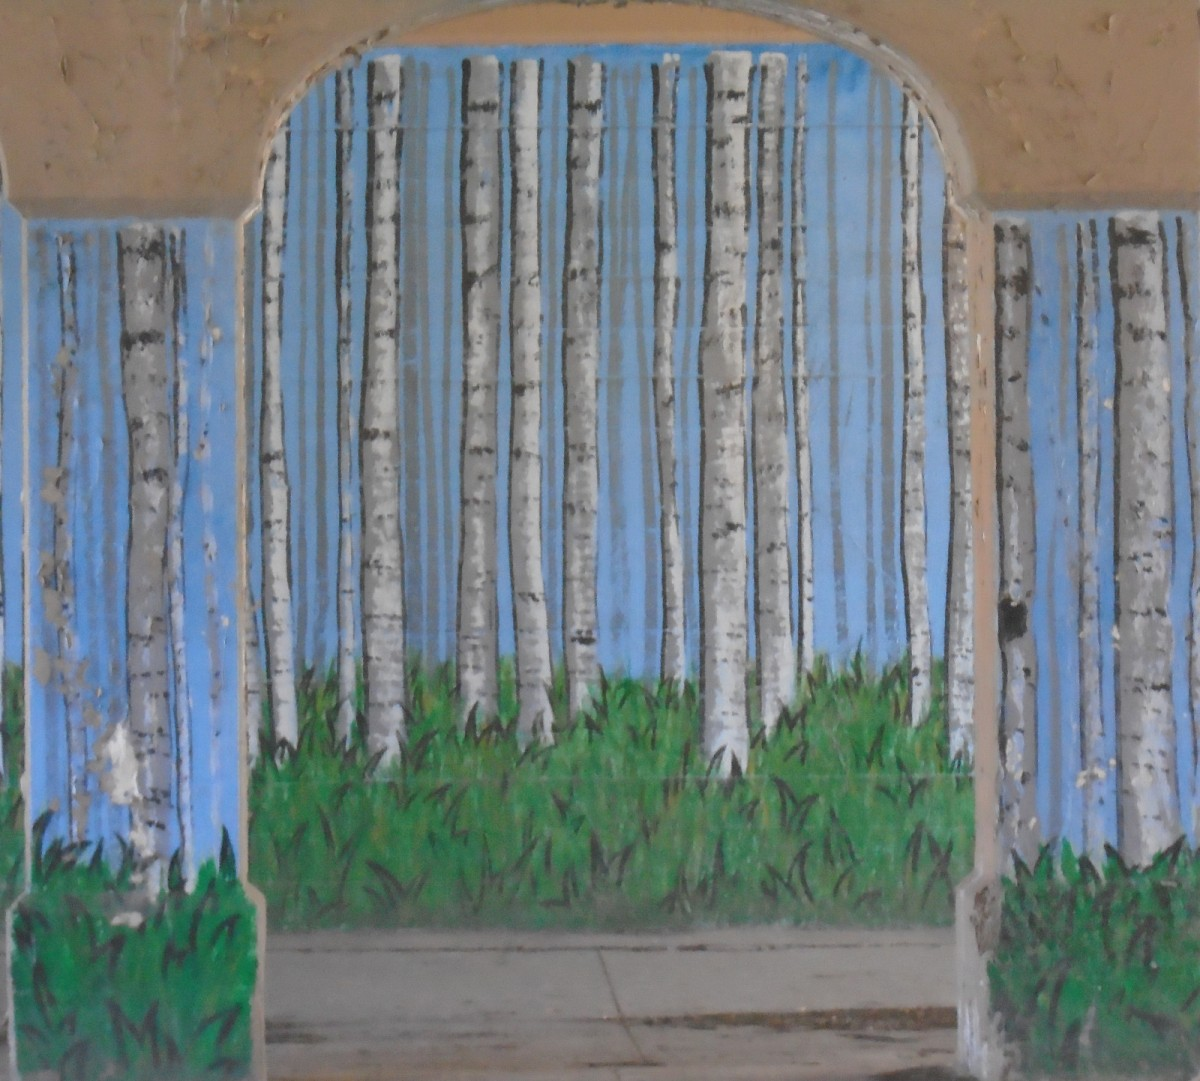 In the Hall of the BirchwoodKing